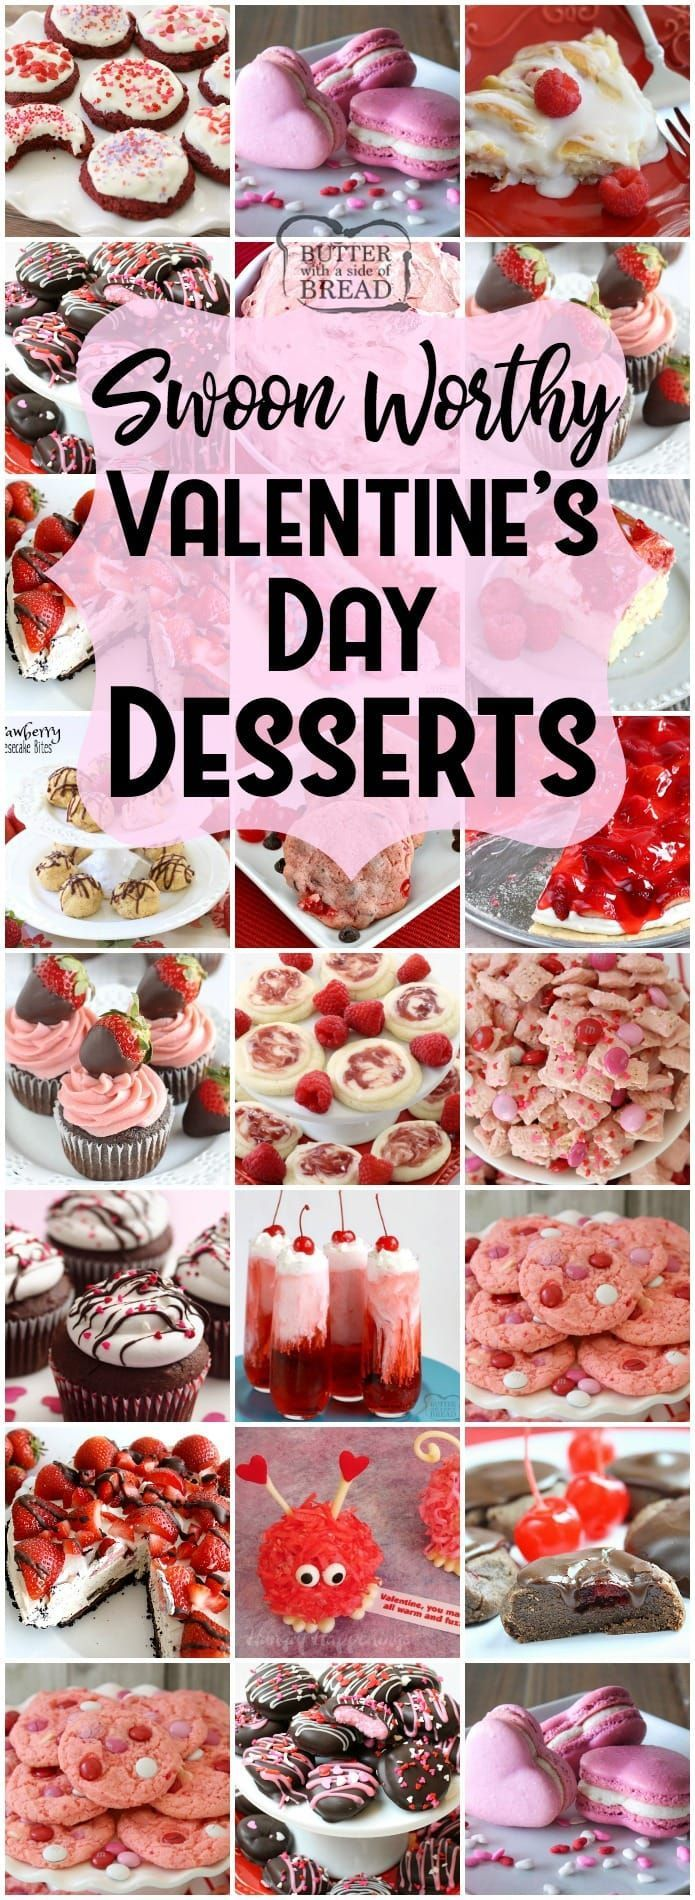 Easy Valentine's Day Desserts perfect for your special someone and guaranteed to make him or her swoon! Cookies, cakes, strawberry pies, chocolate pretzels and more #Valentine's Day #desserts for everyone. Lots of class party ideas! Butter With A Side of Bread